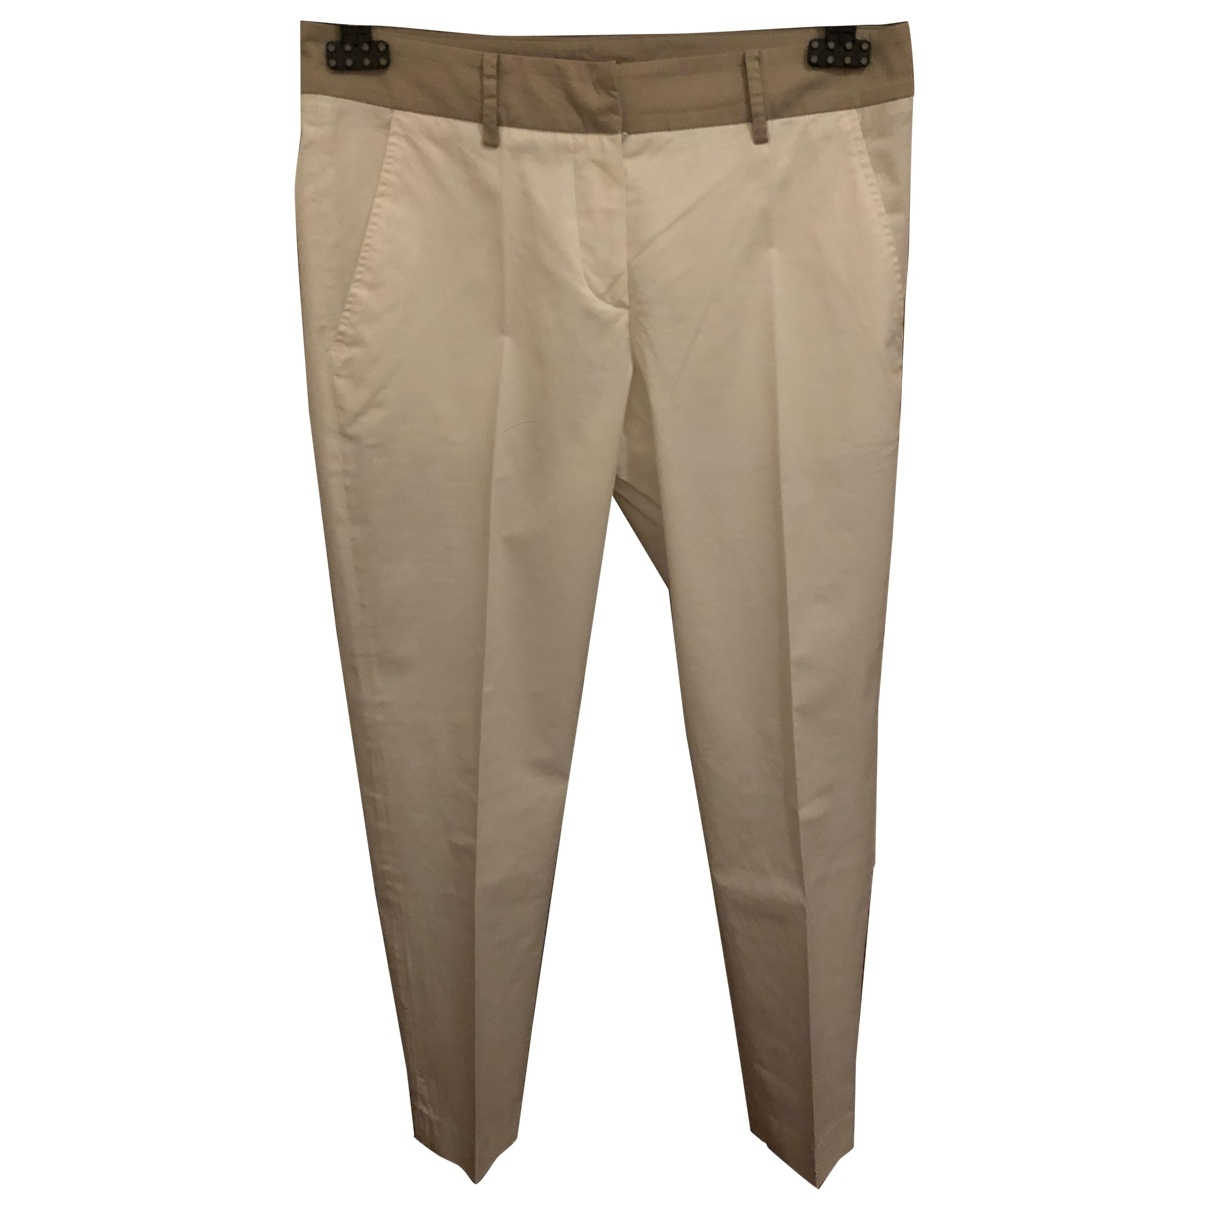 Altea \N Beige Cotton Trousers for Women 42 IT